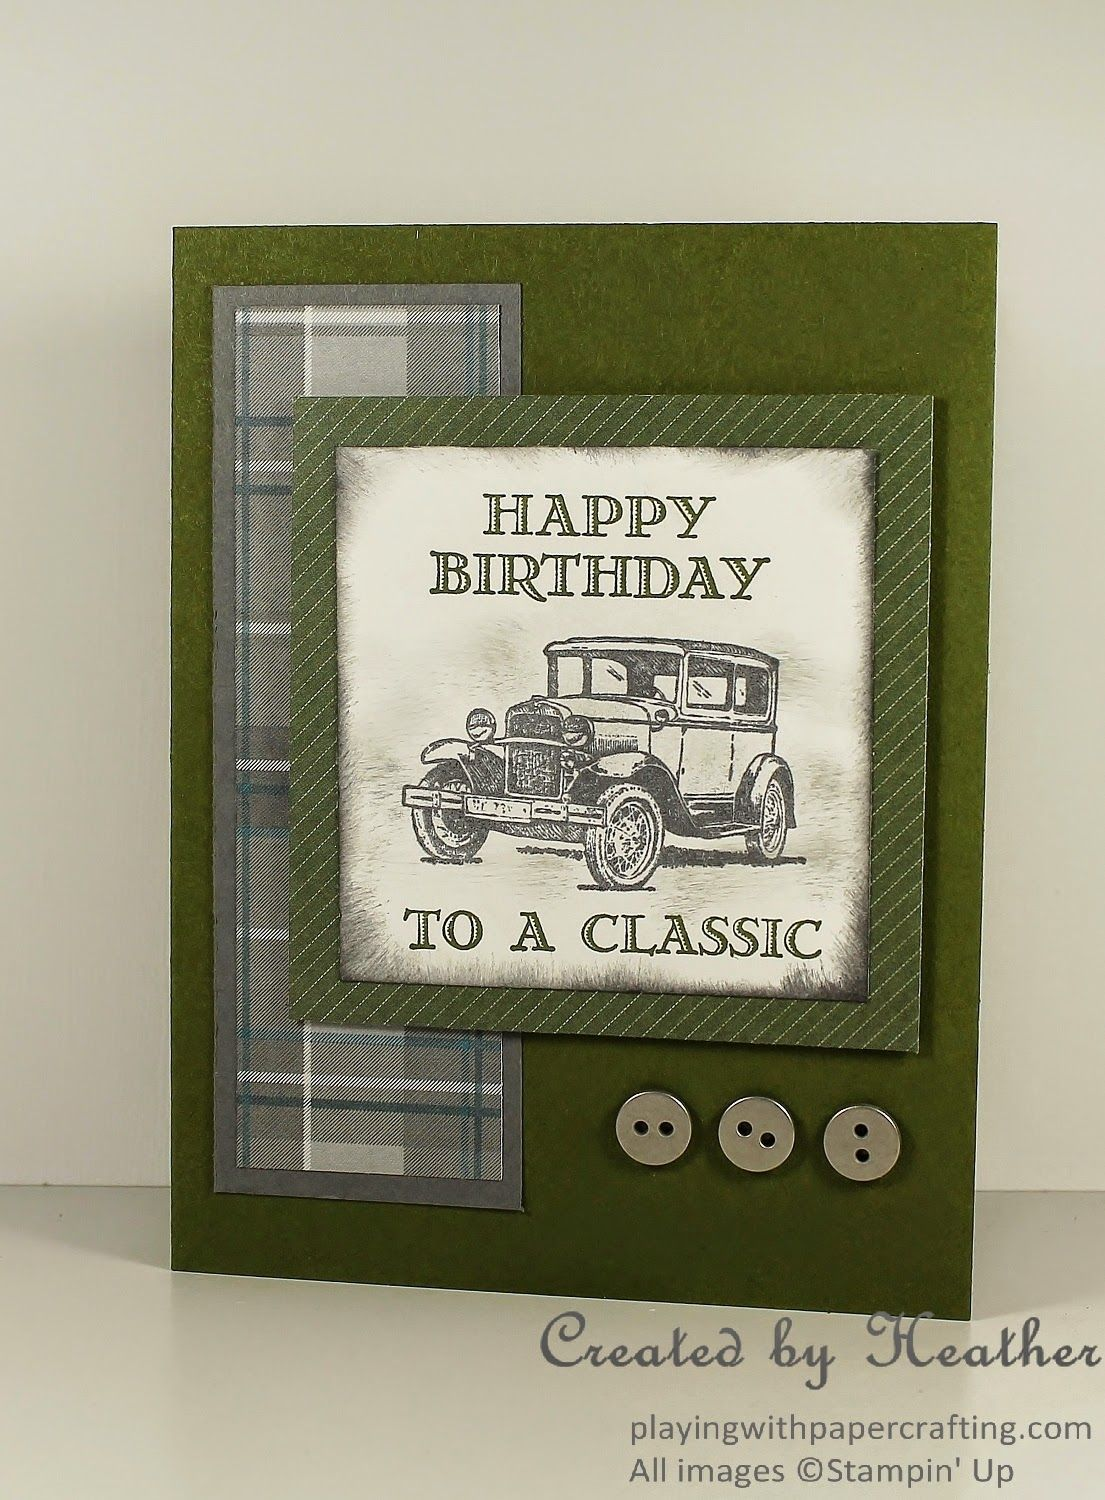 Playing with papercrafting guy greetings birthday card sneak peek card car classic cars ford transportation travel journey playing with papercrafting guy greetings birthday card sneak peek masculine bookmarktalkfo Image collections